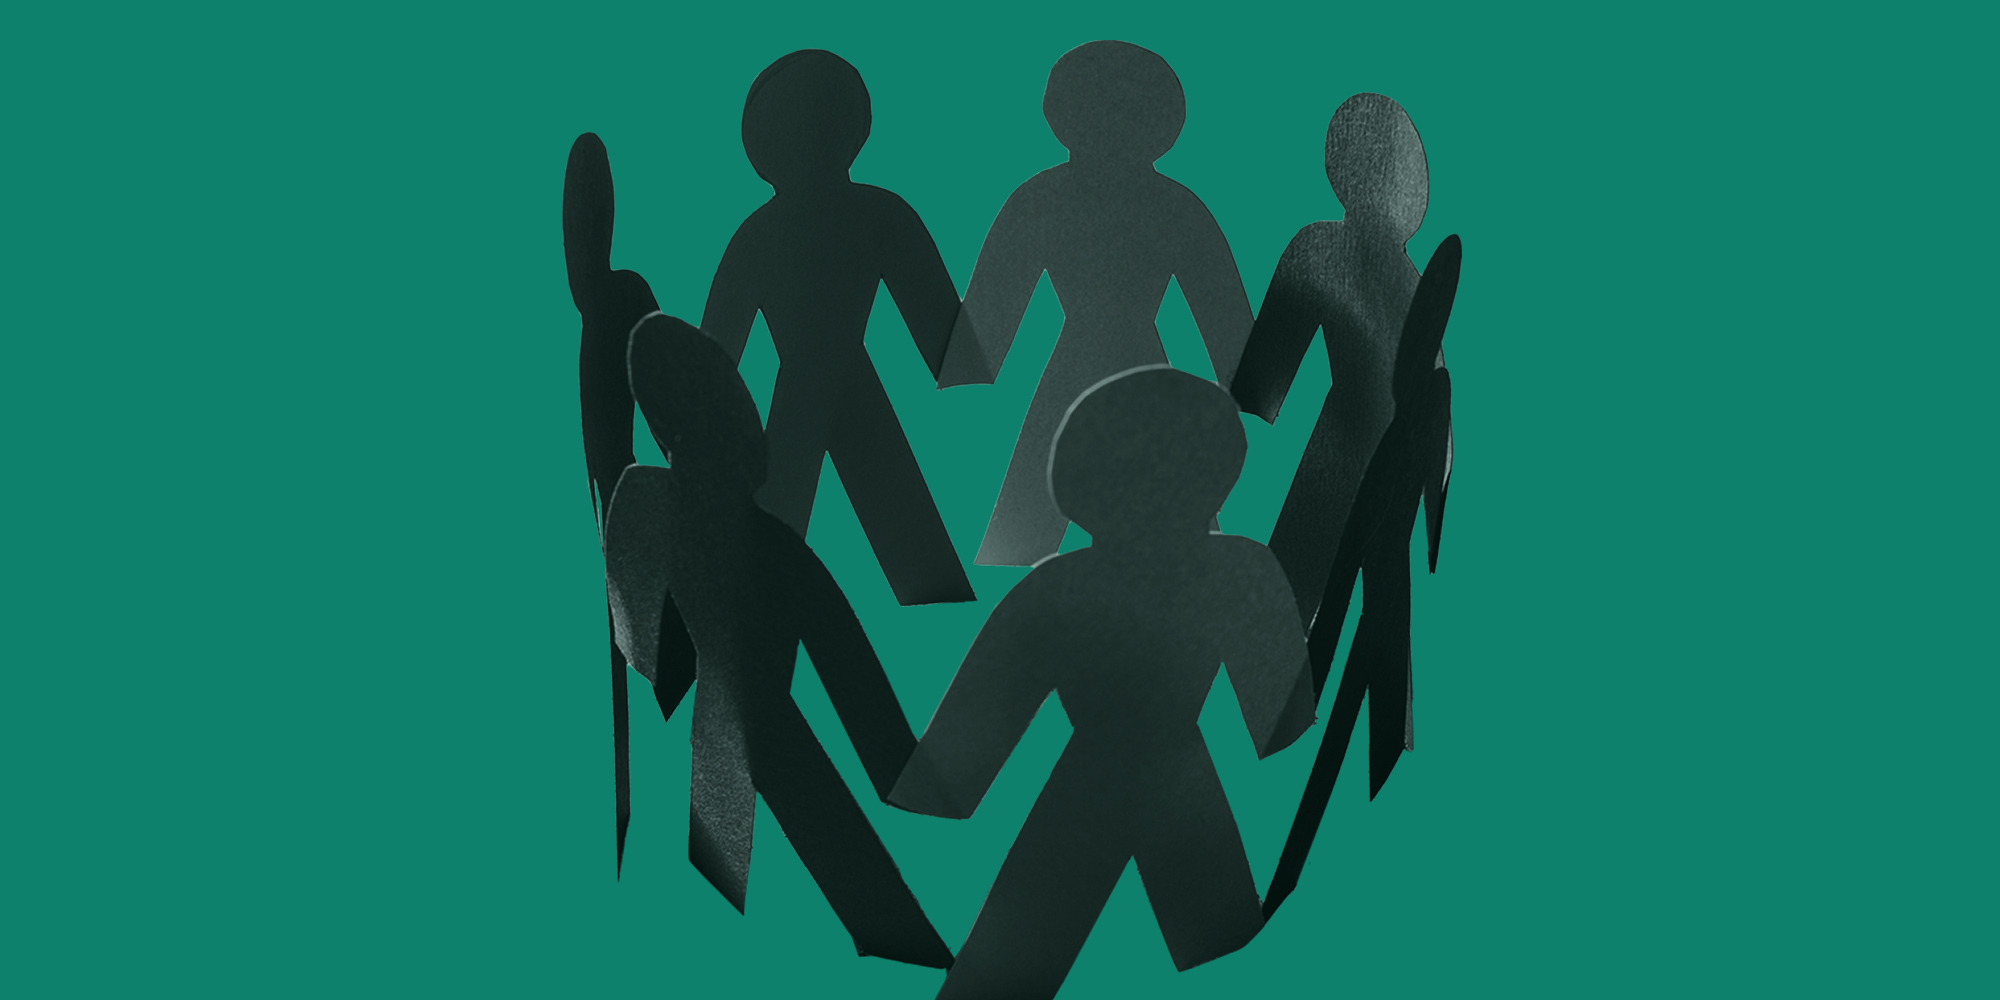 A circle of paper people holding hands. Substance use in the LGBTQIA community